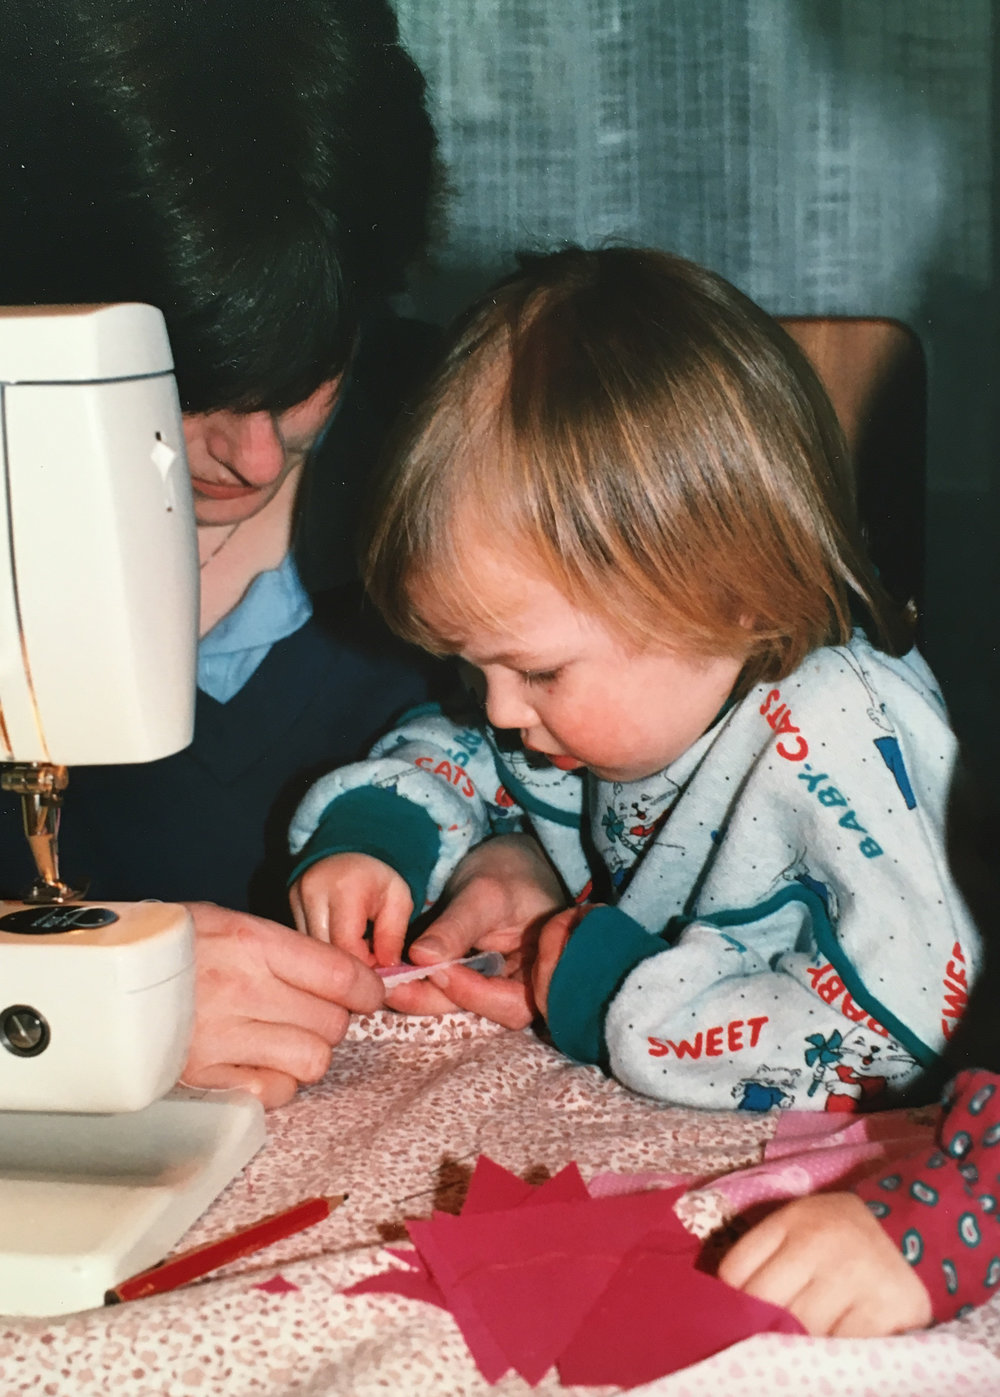 Stefanie, 3 years old sewing with Mommy